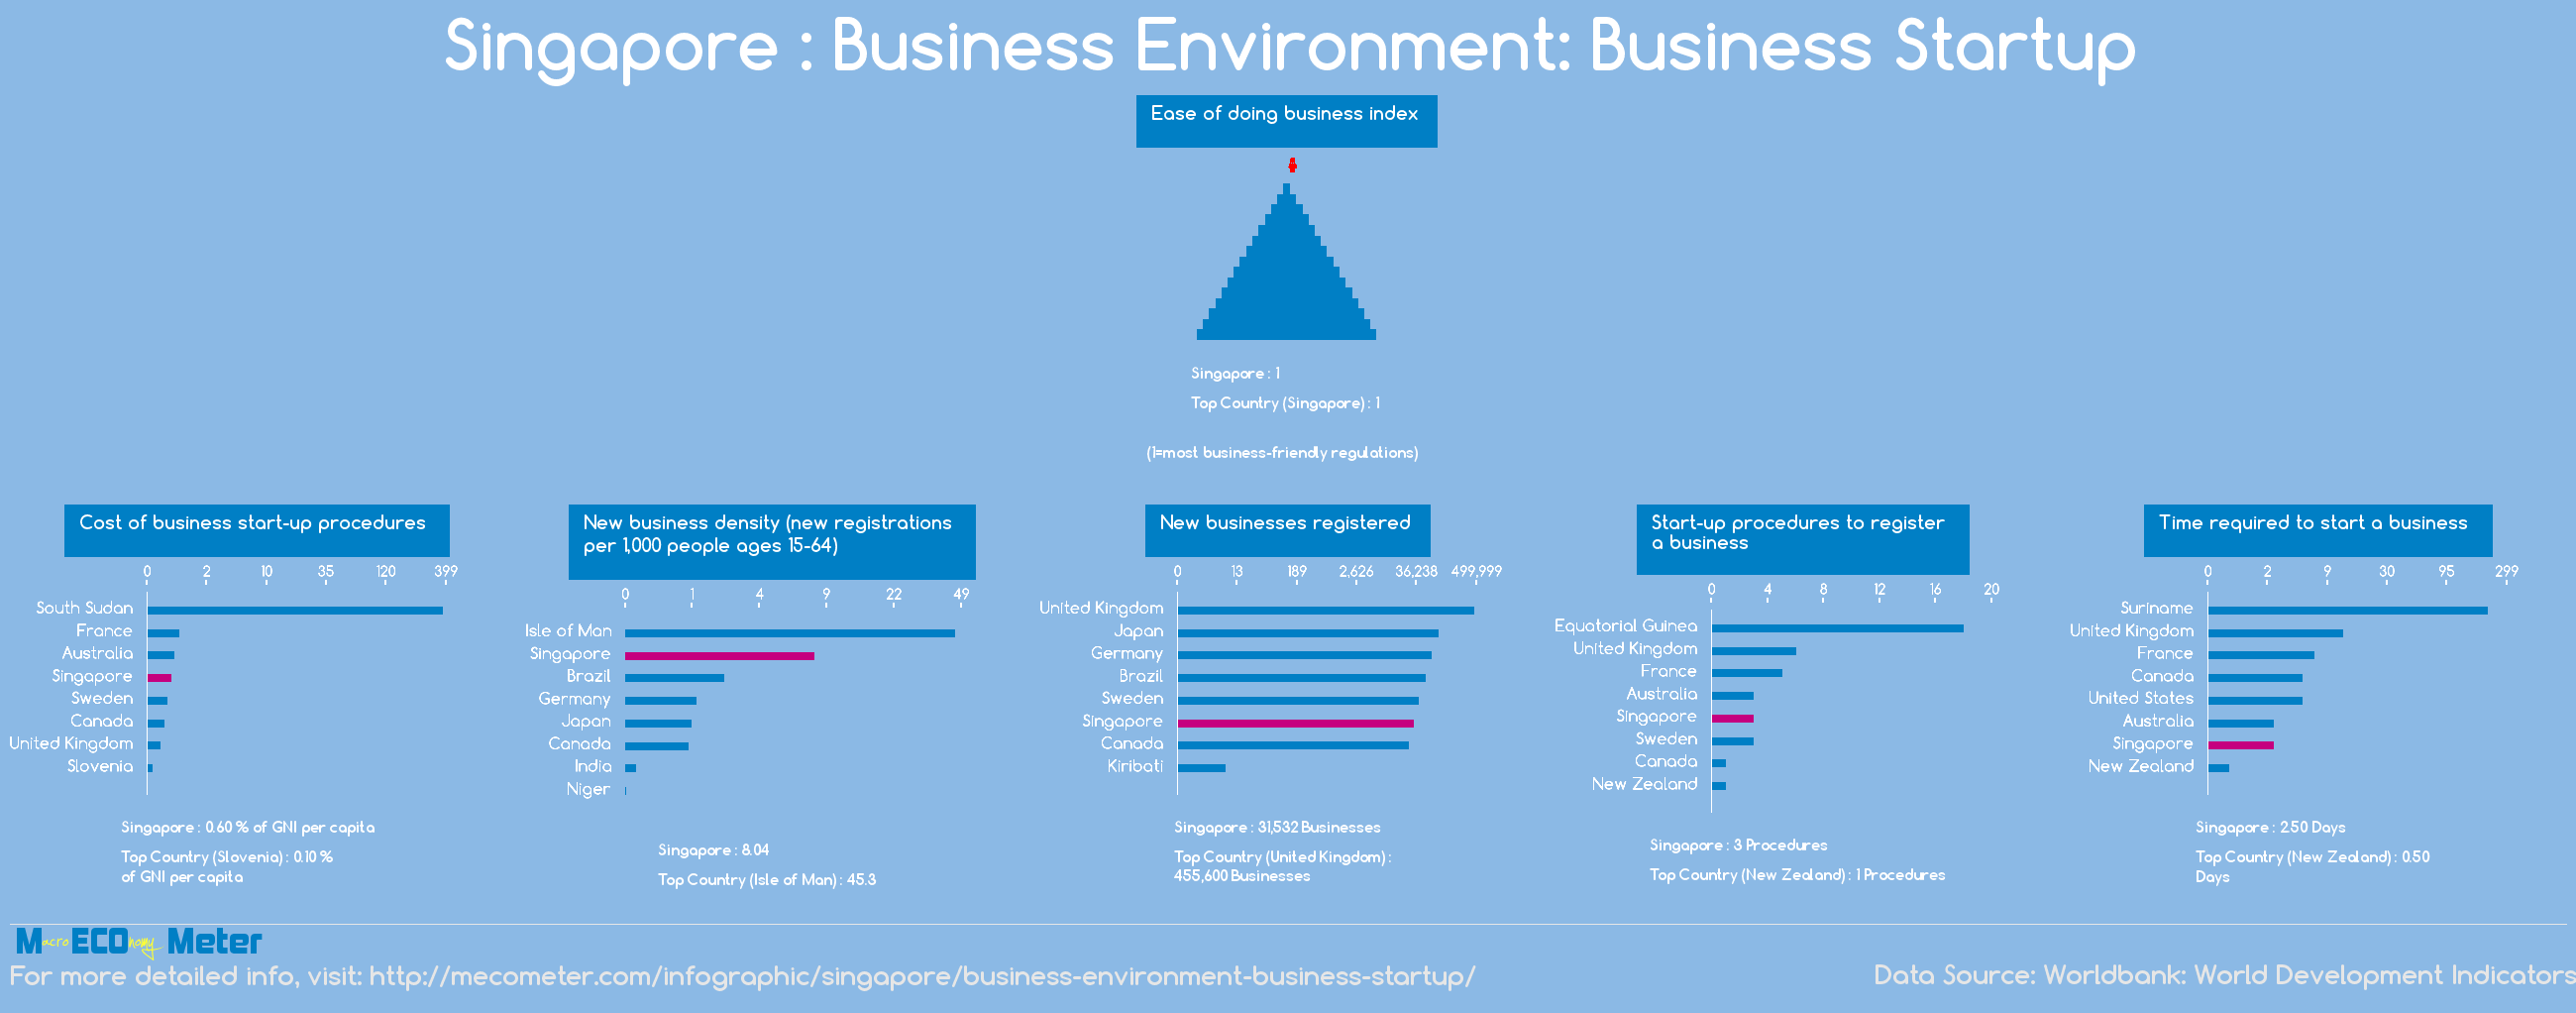 Singapore : Business Environment: Business Startup